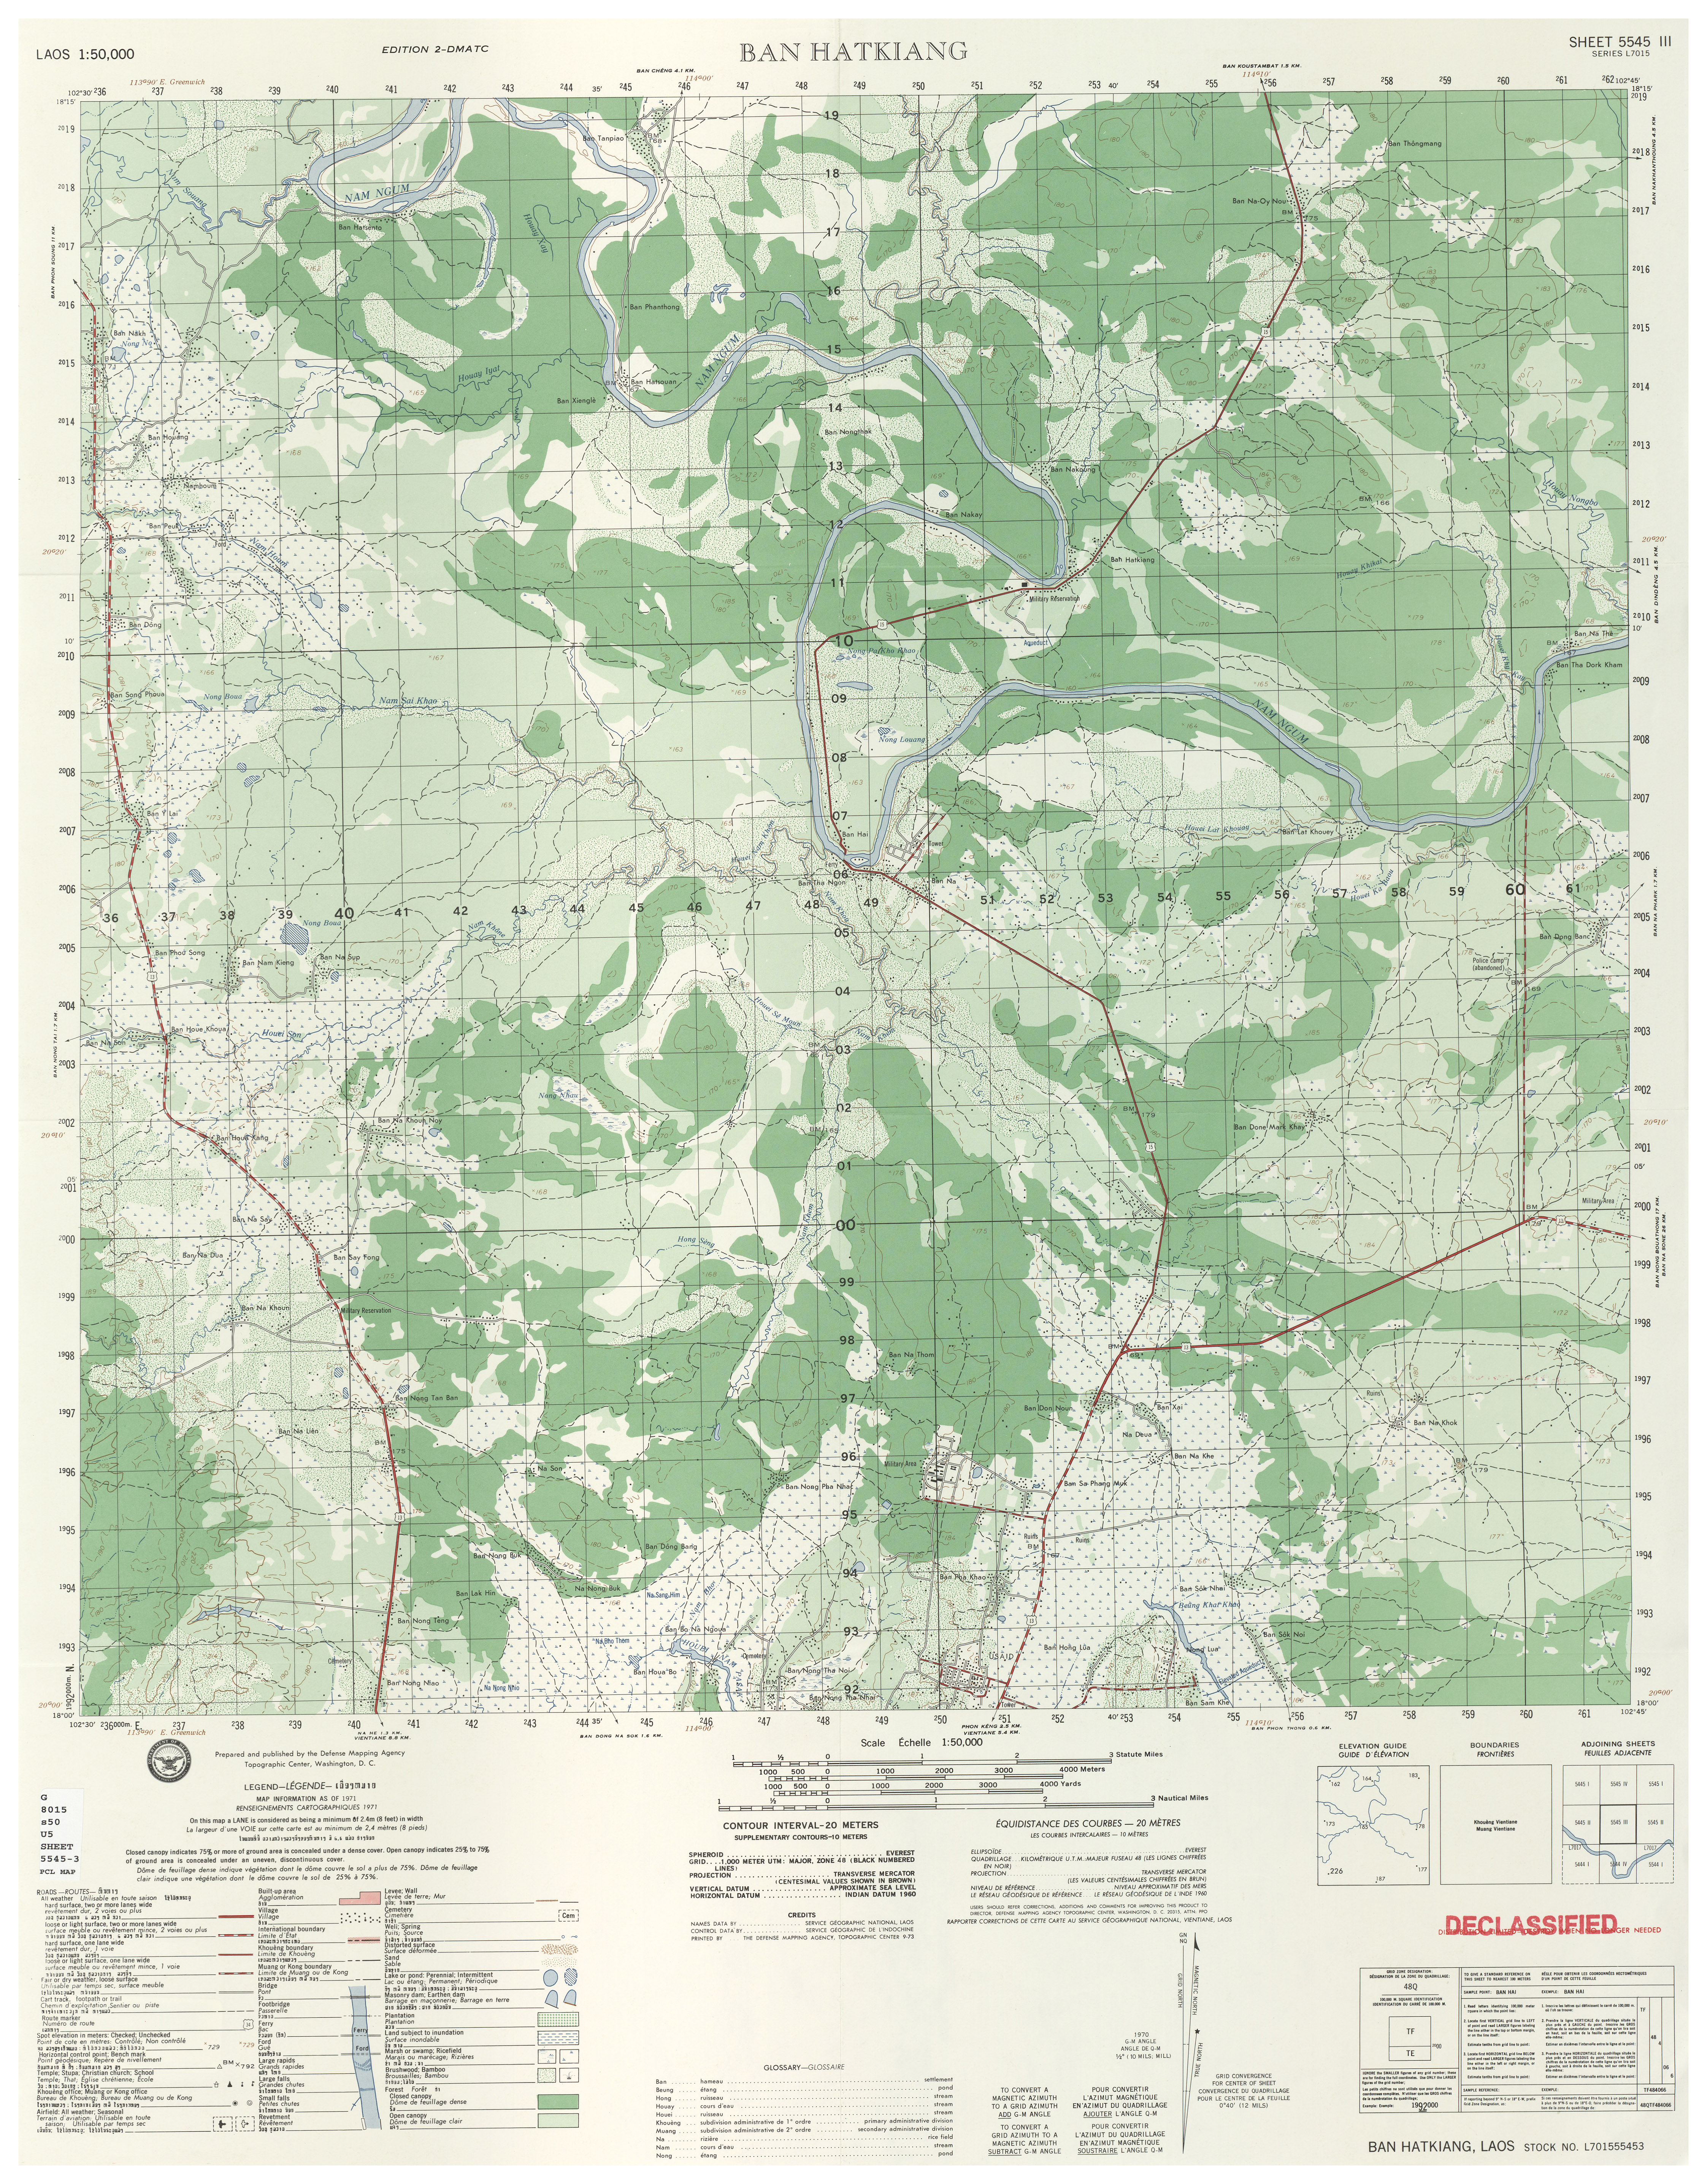 Laos Topographic Maps - Perry-Castañeda Map Collection - UT Library ...